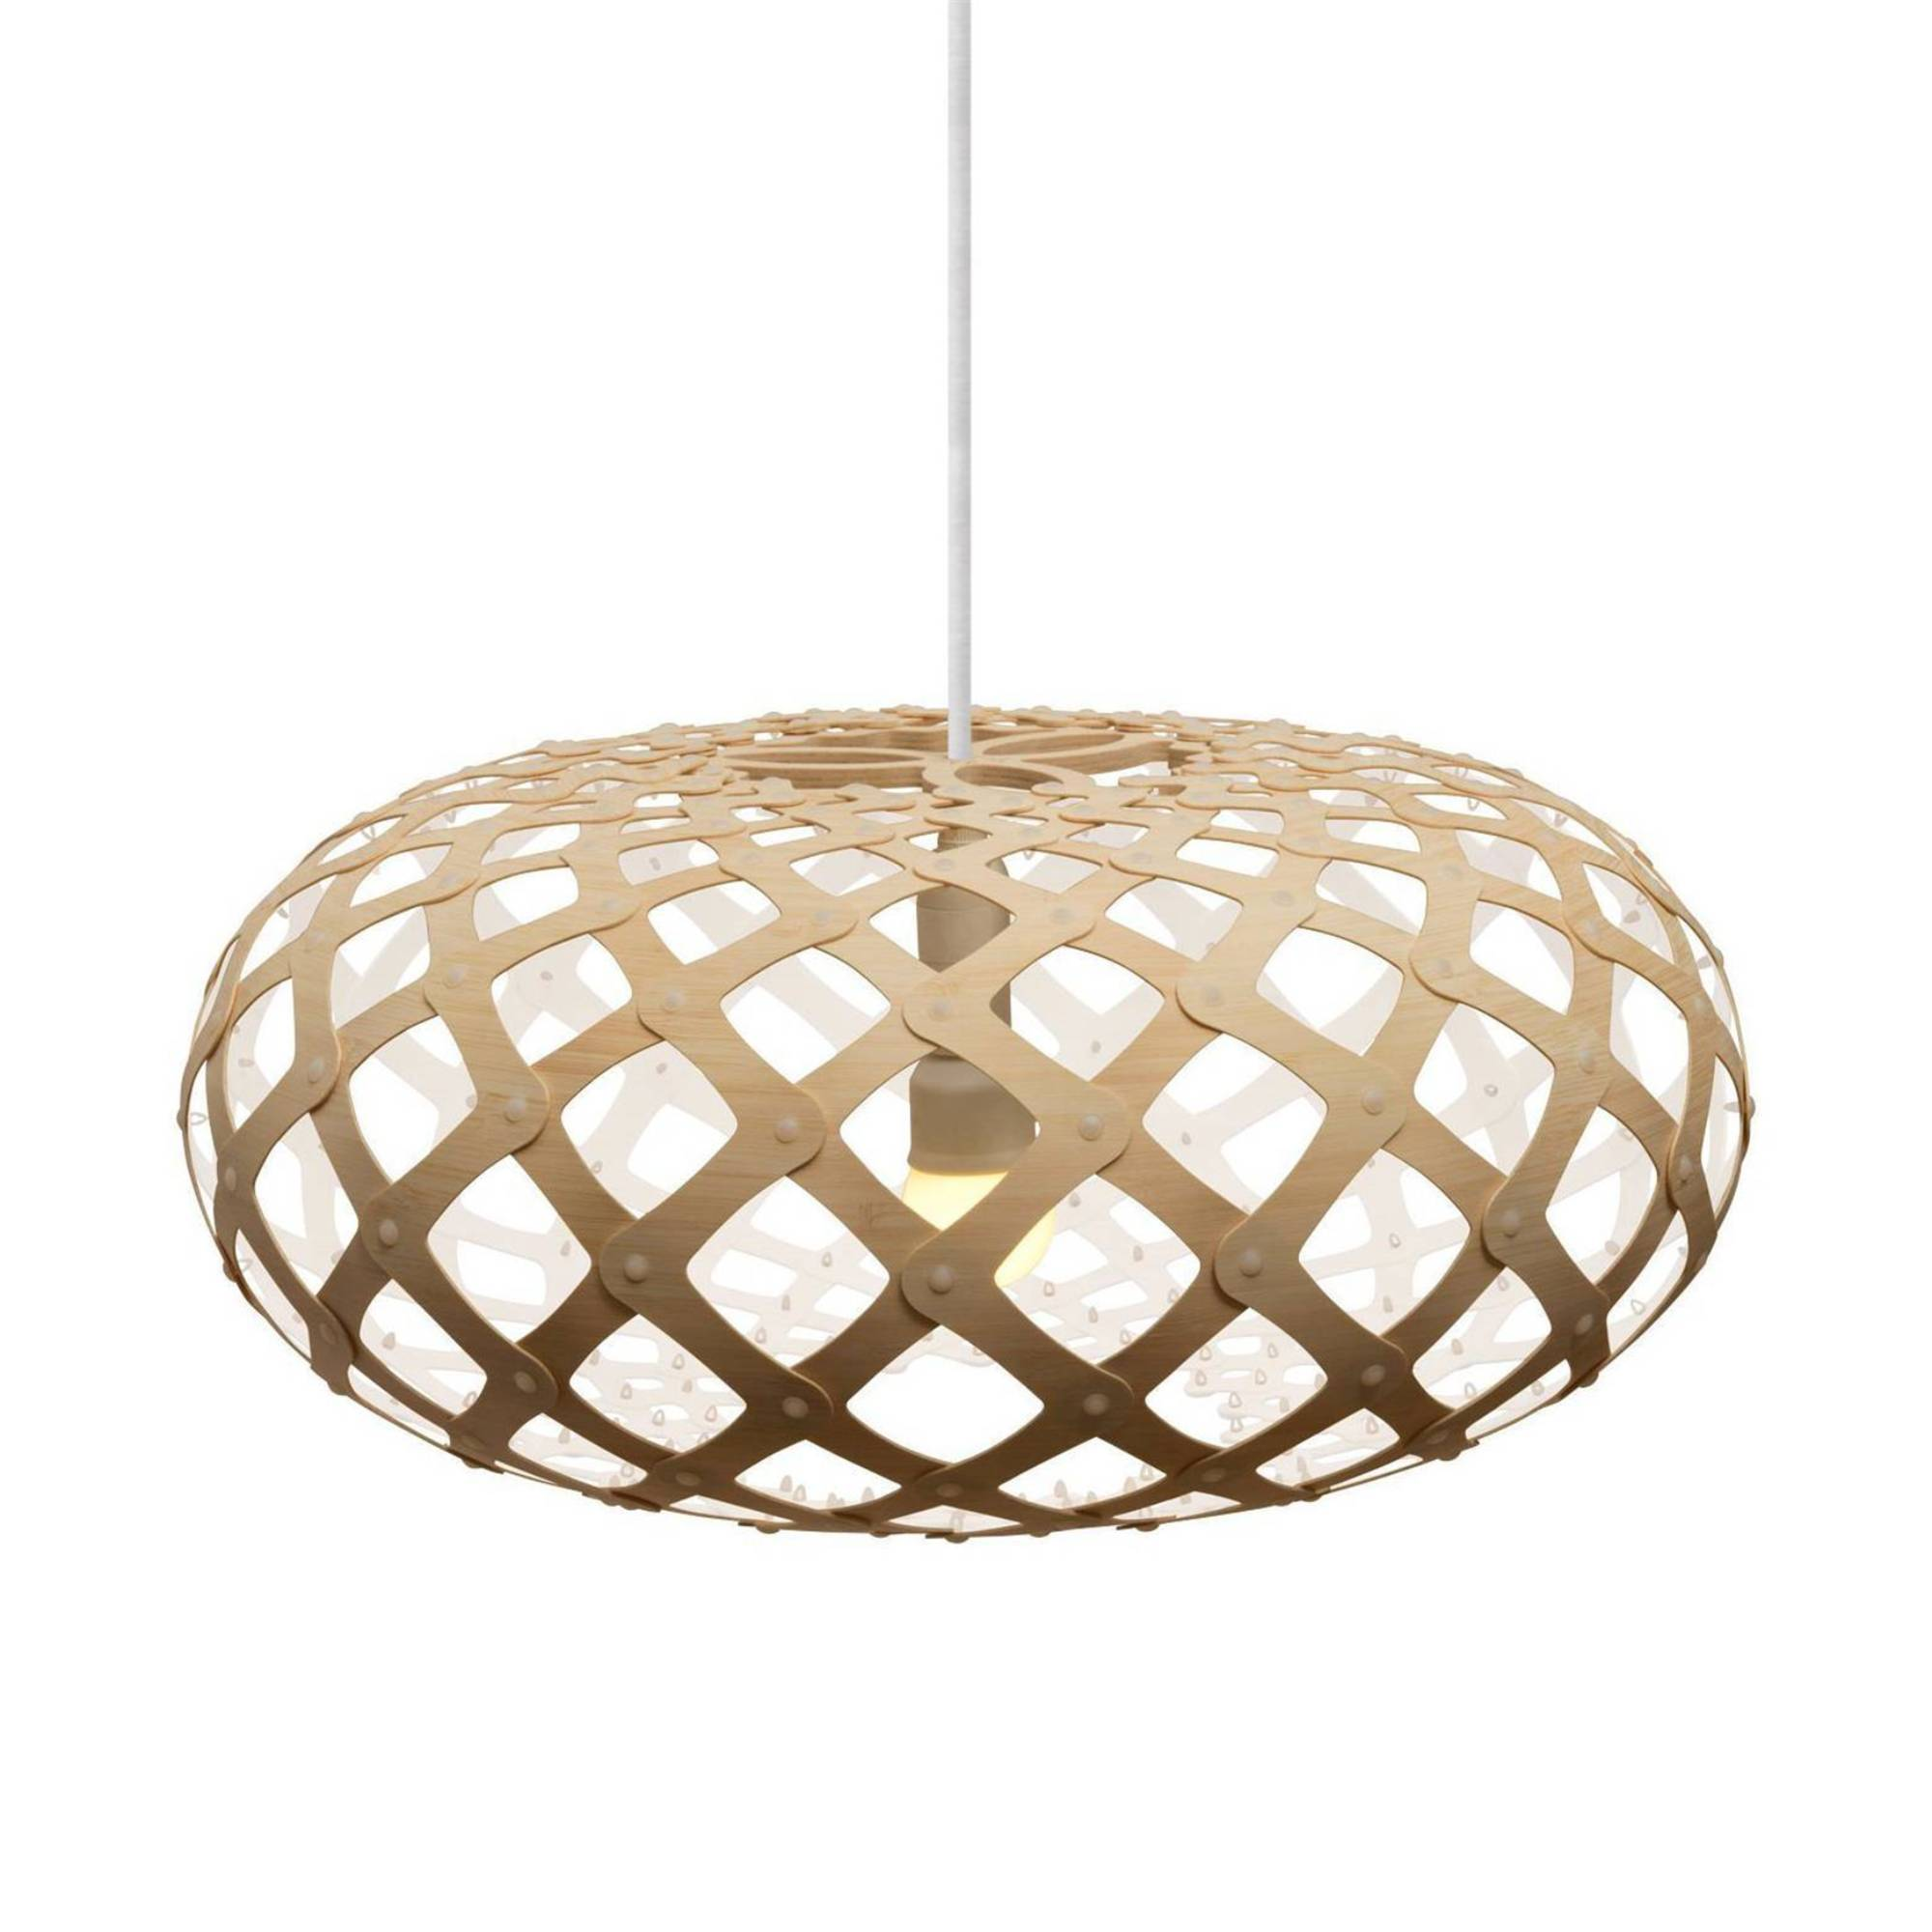 Kina Pendant Light: 800 + White